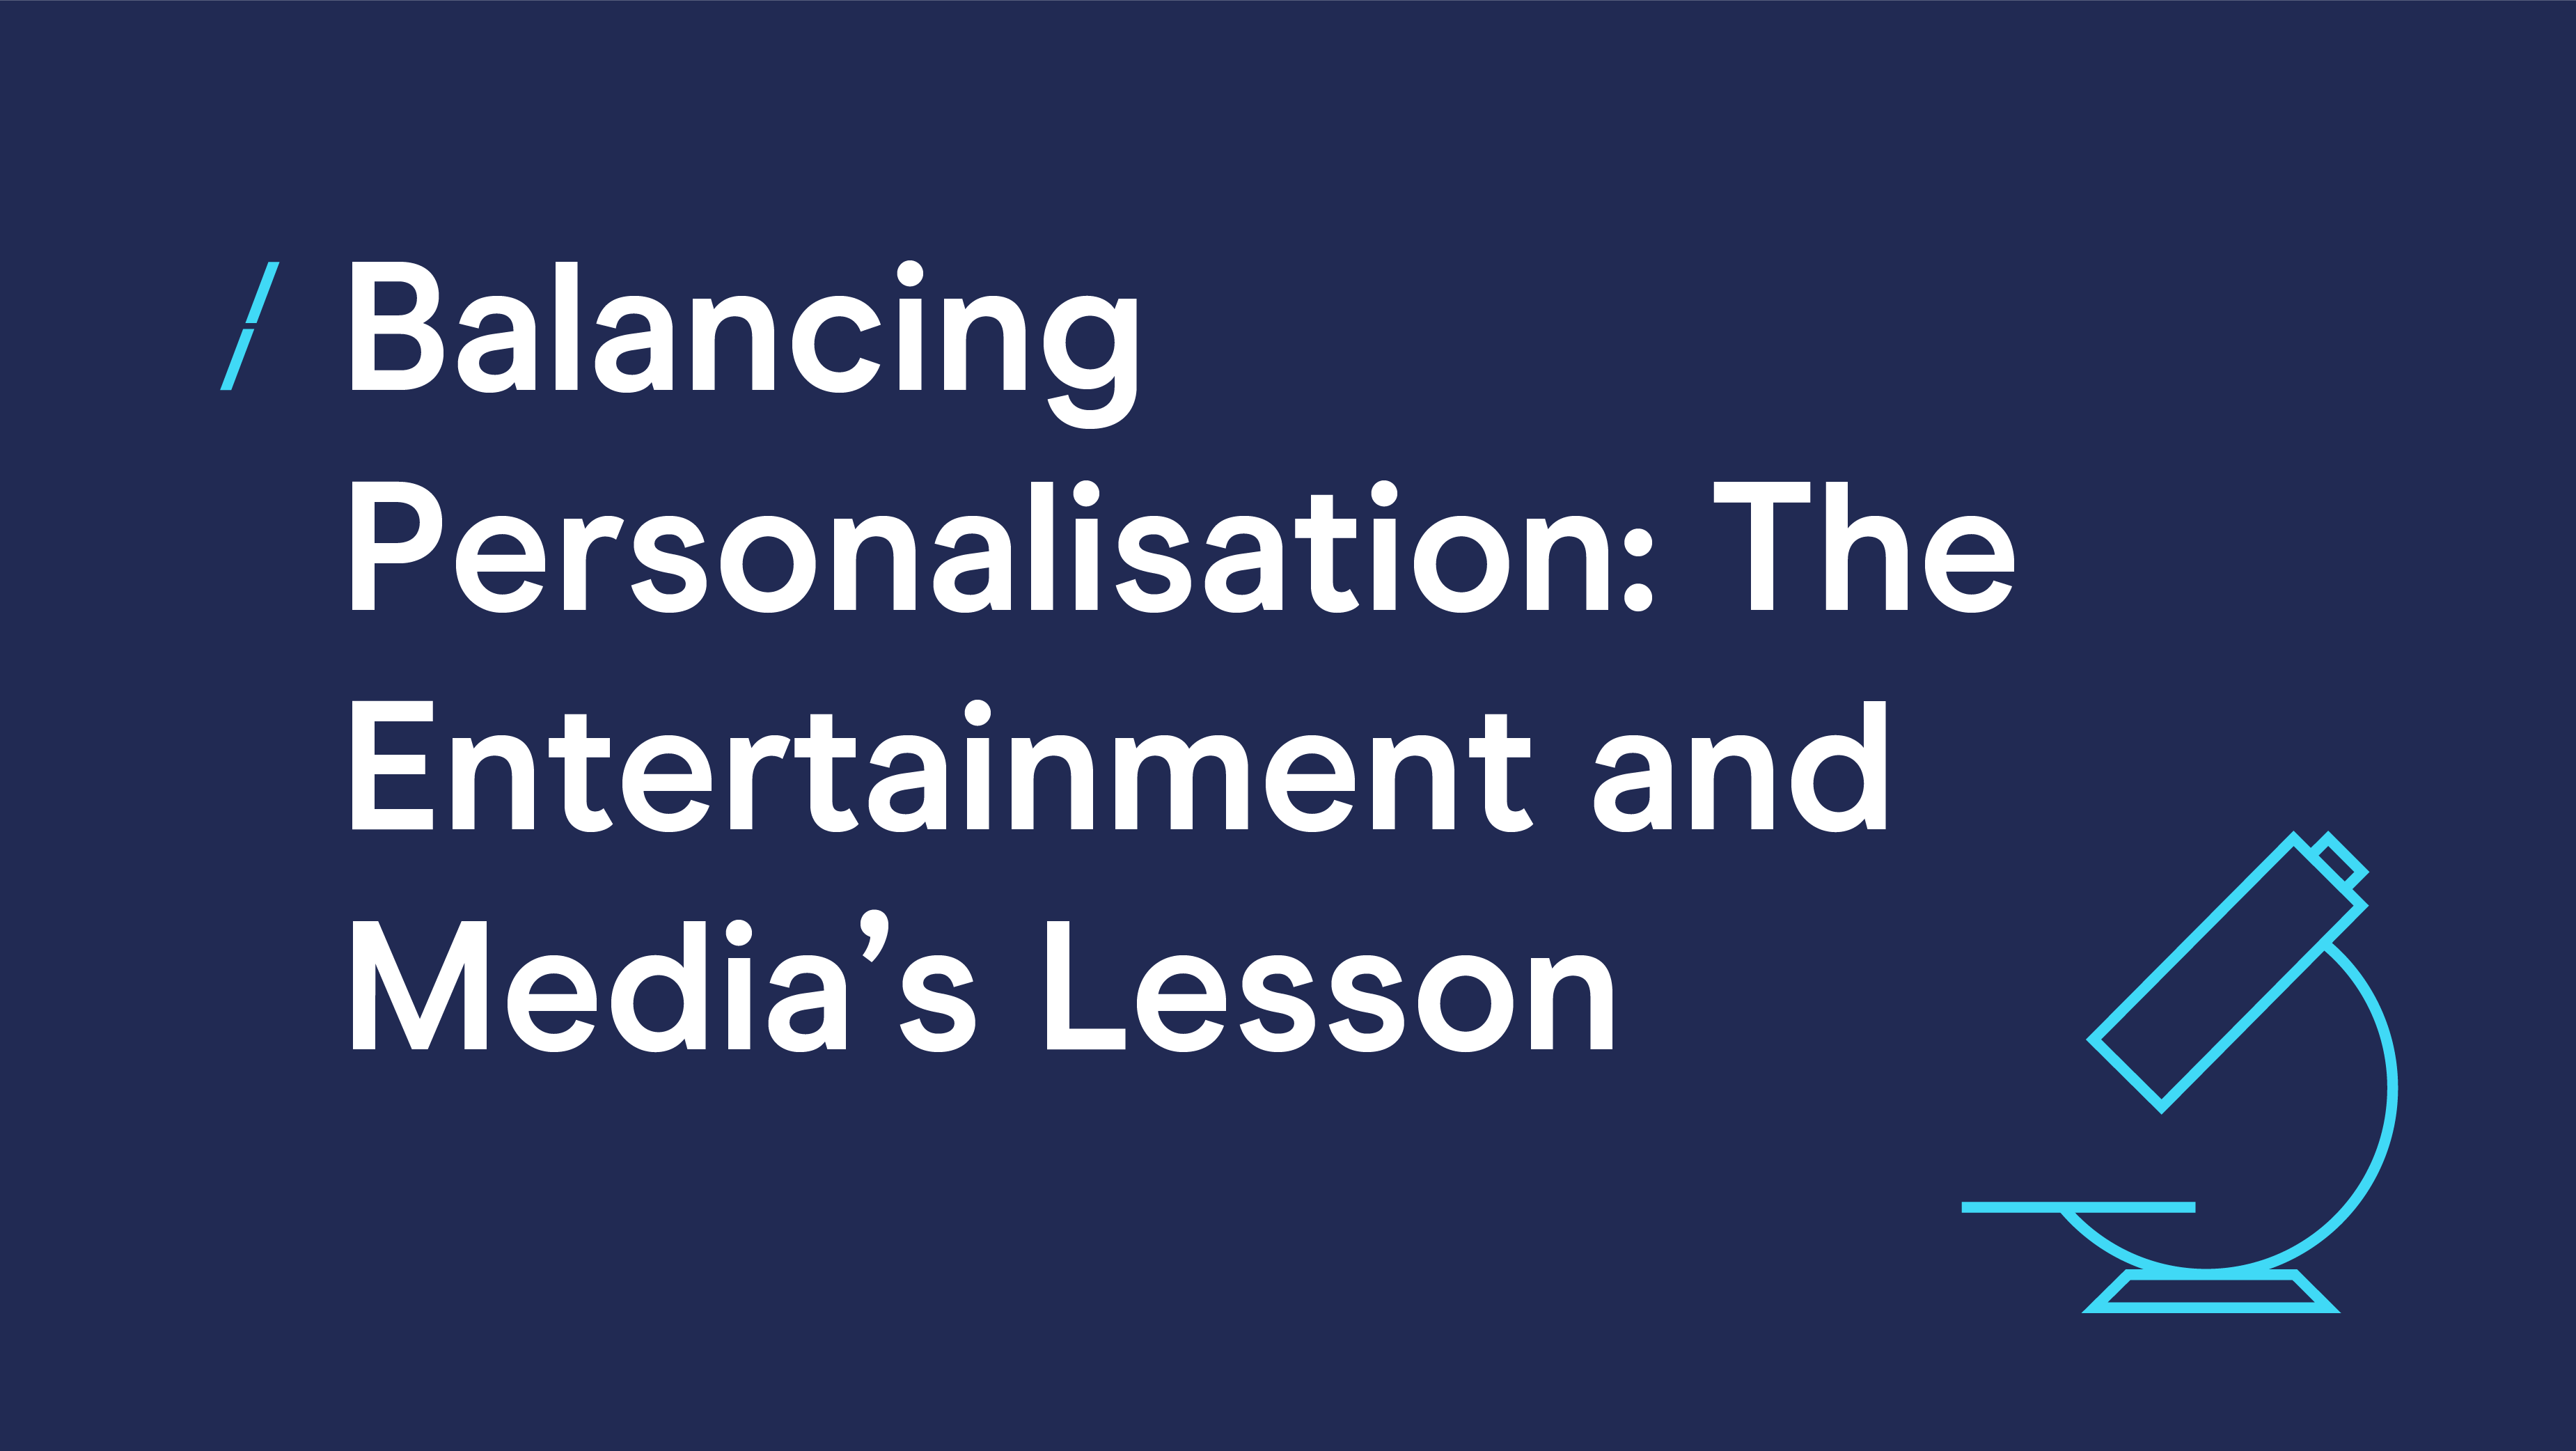 Balancing Personalisation- The Entertainment and Medias Lesson_Research articles.png